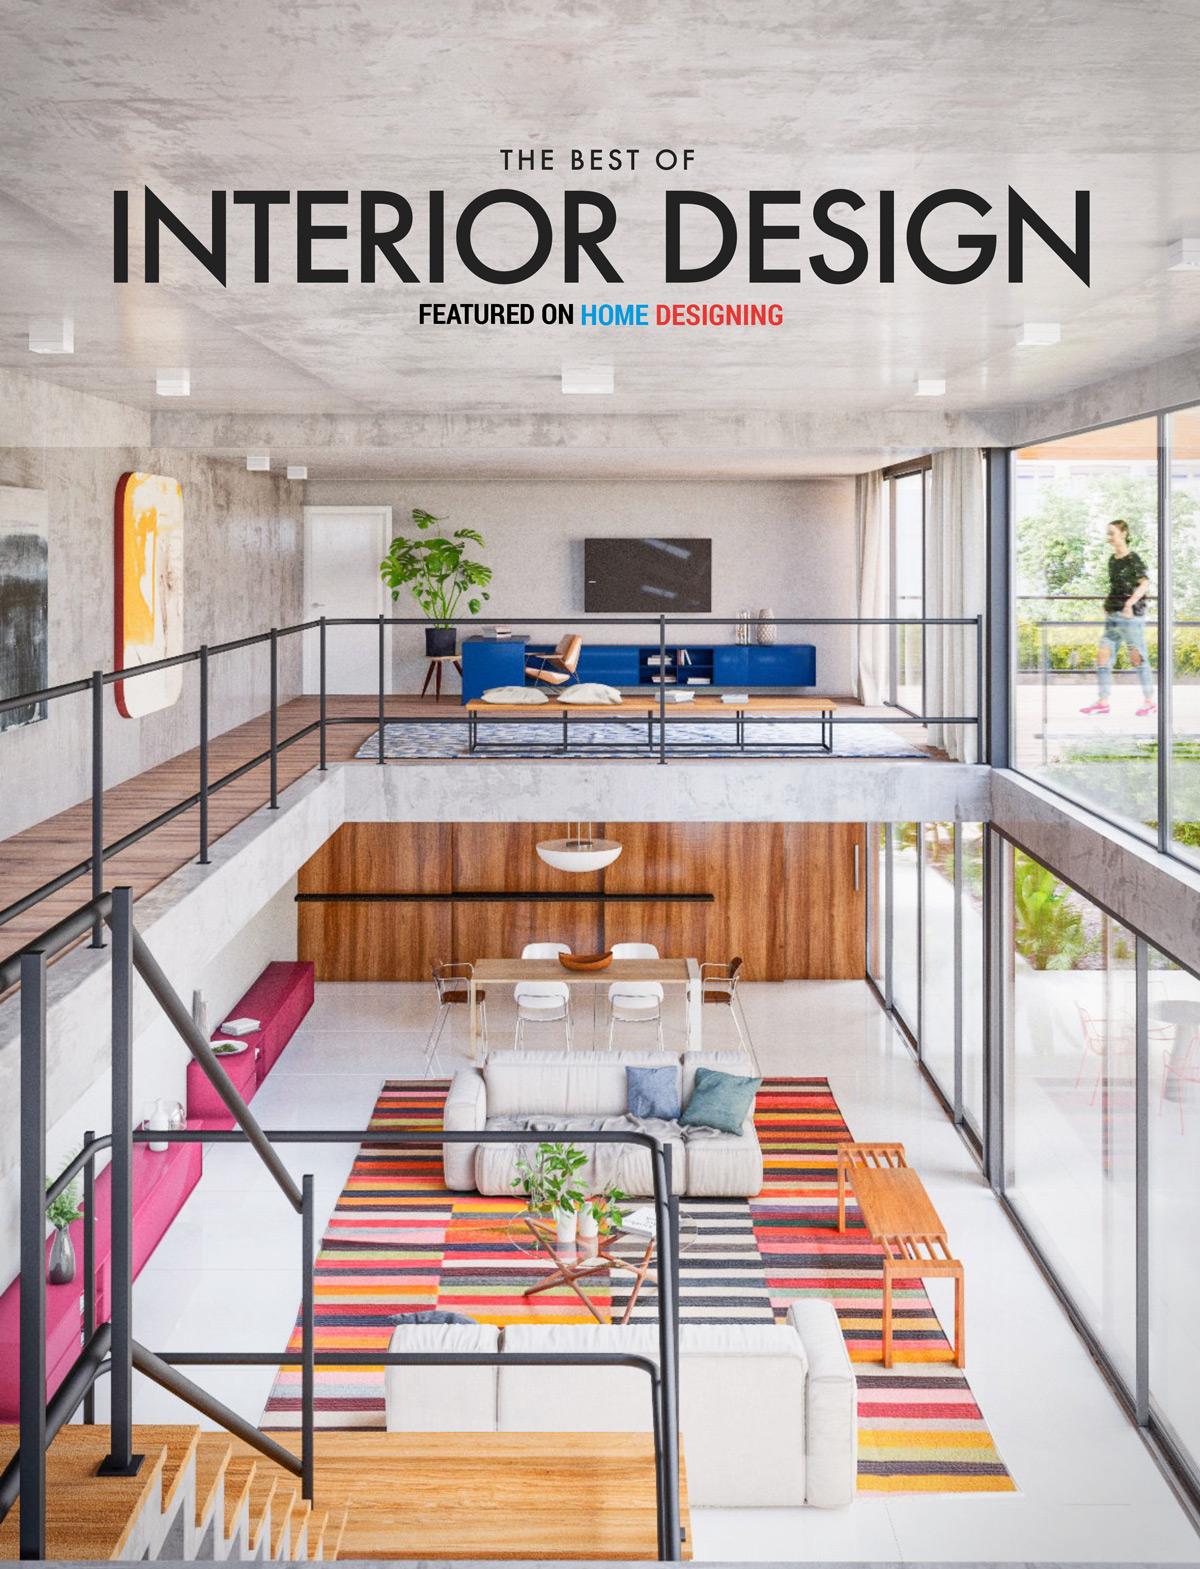 Free interior design ebook the best of interior design for Pictures of interior designs